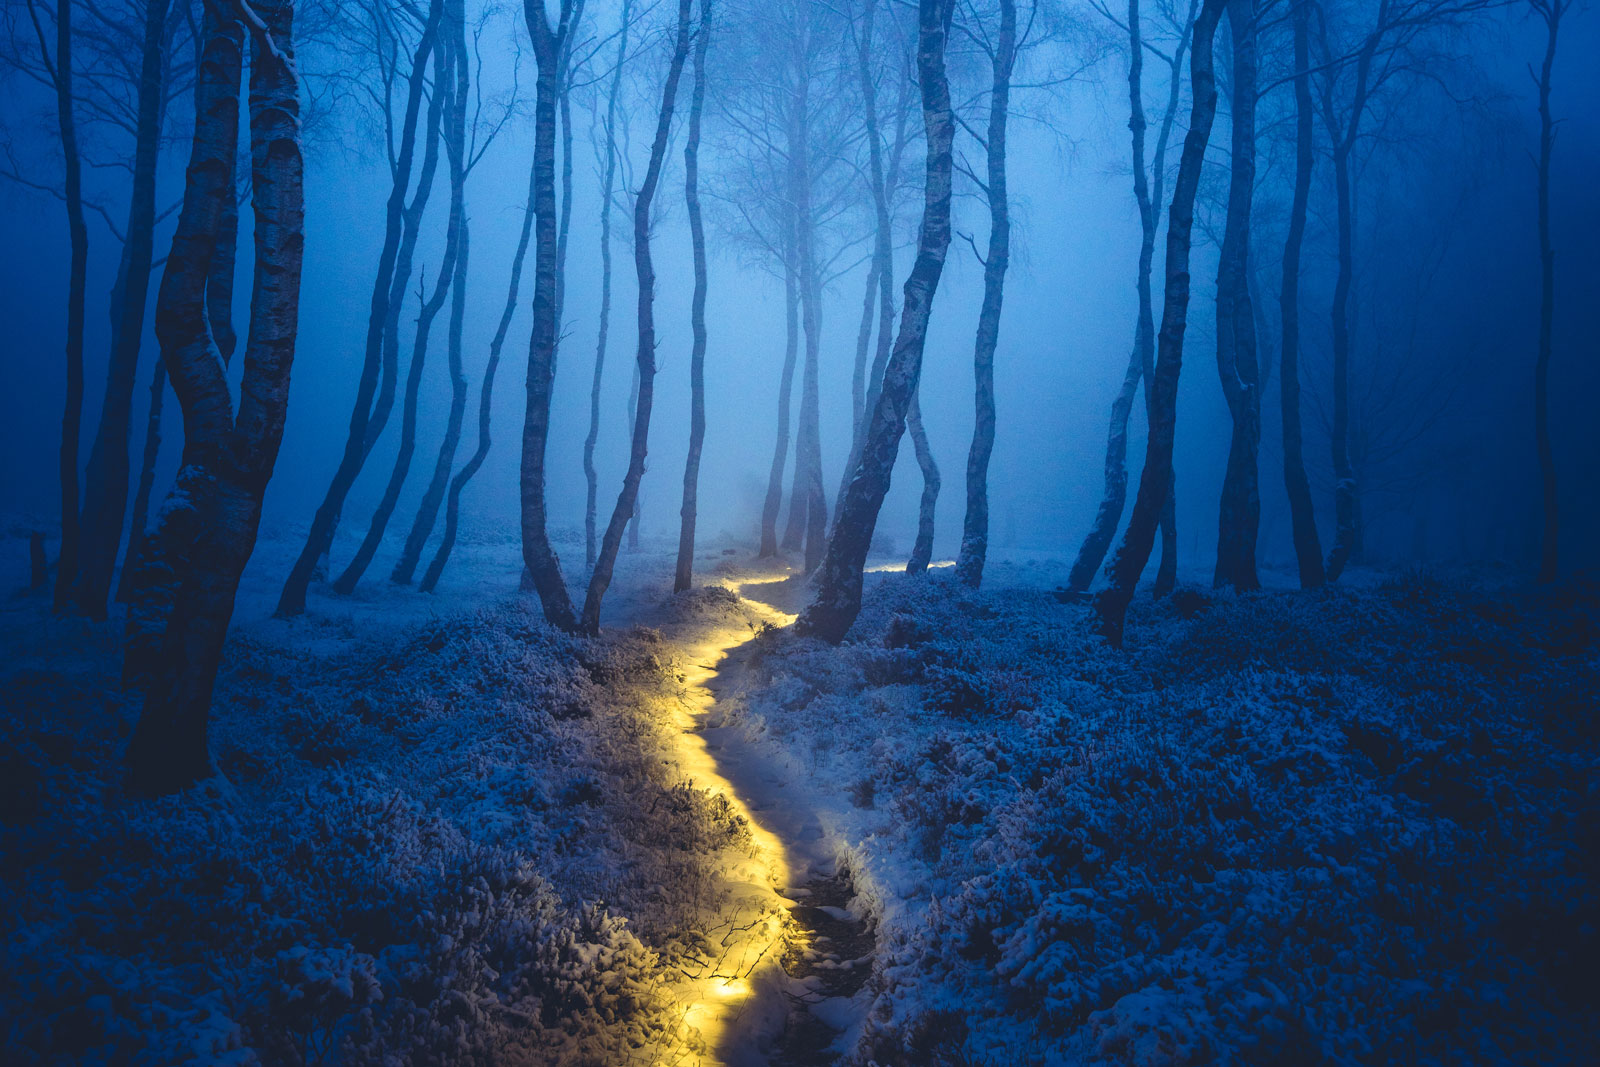 3 Magical Photos that Capture Light at Night